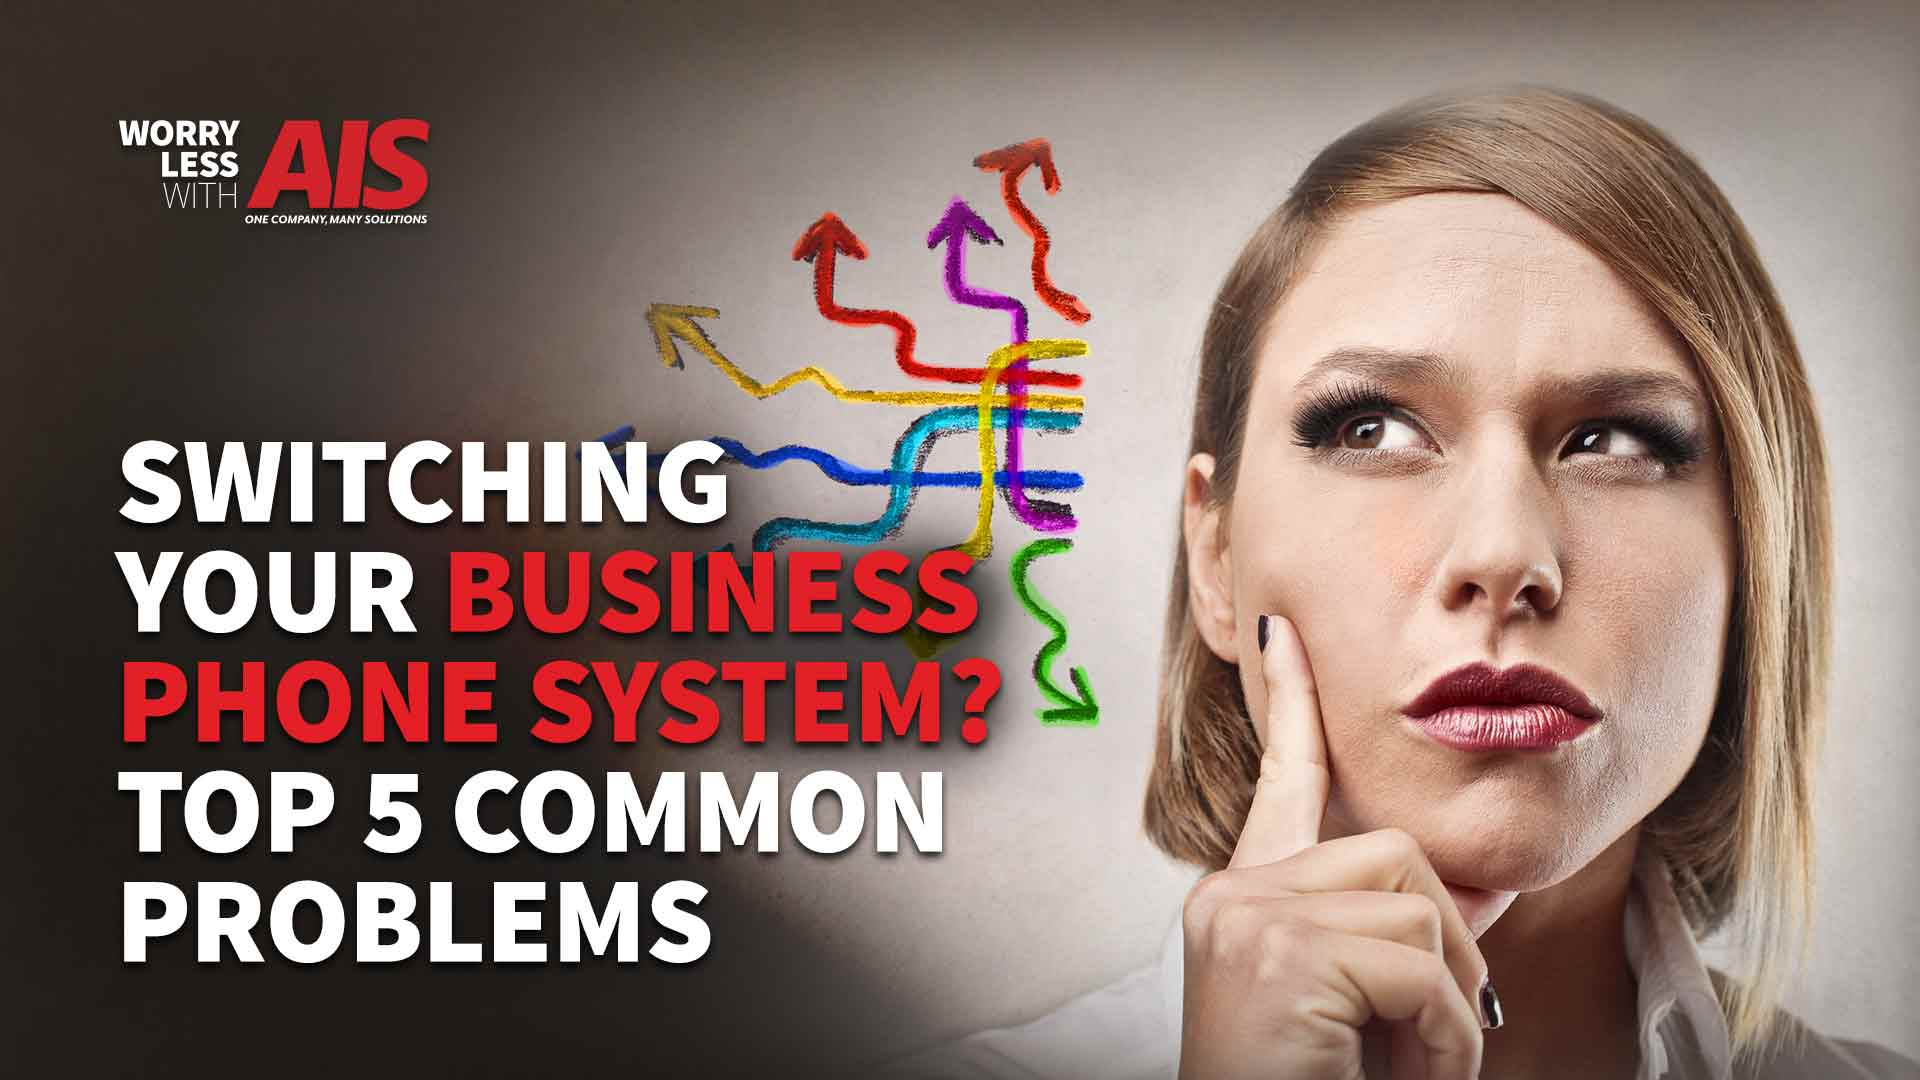 Switching Your Business Phone System? Top 5 Common Problems